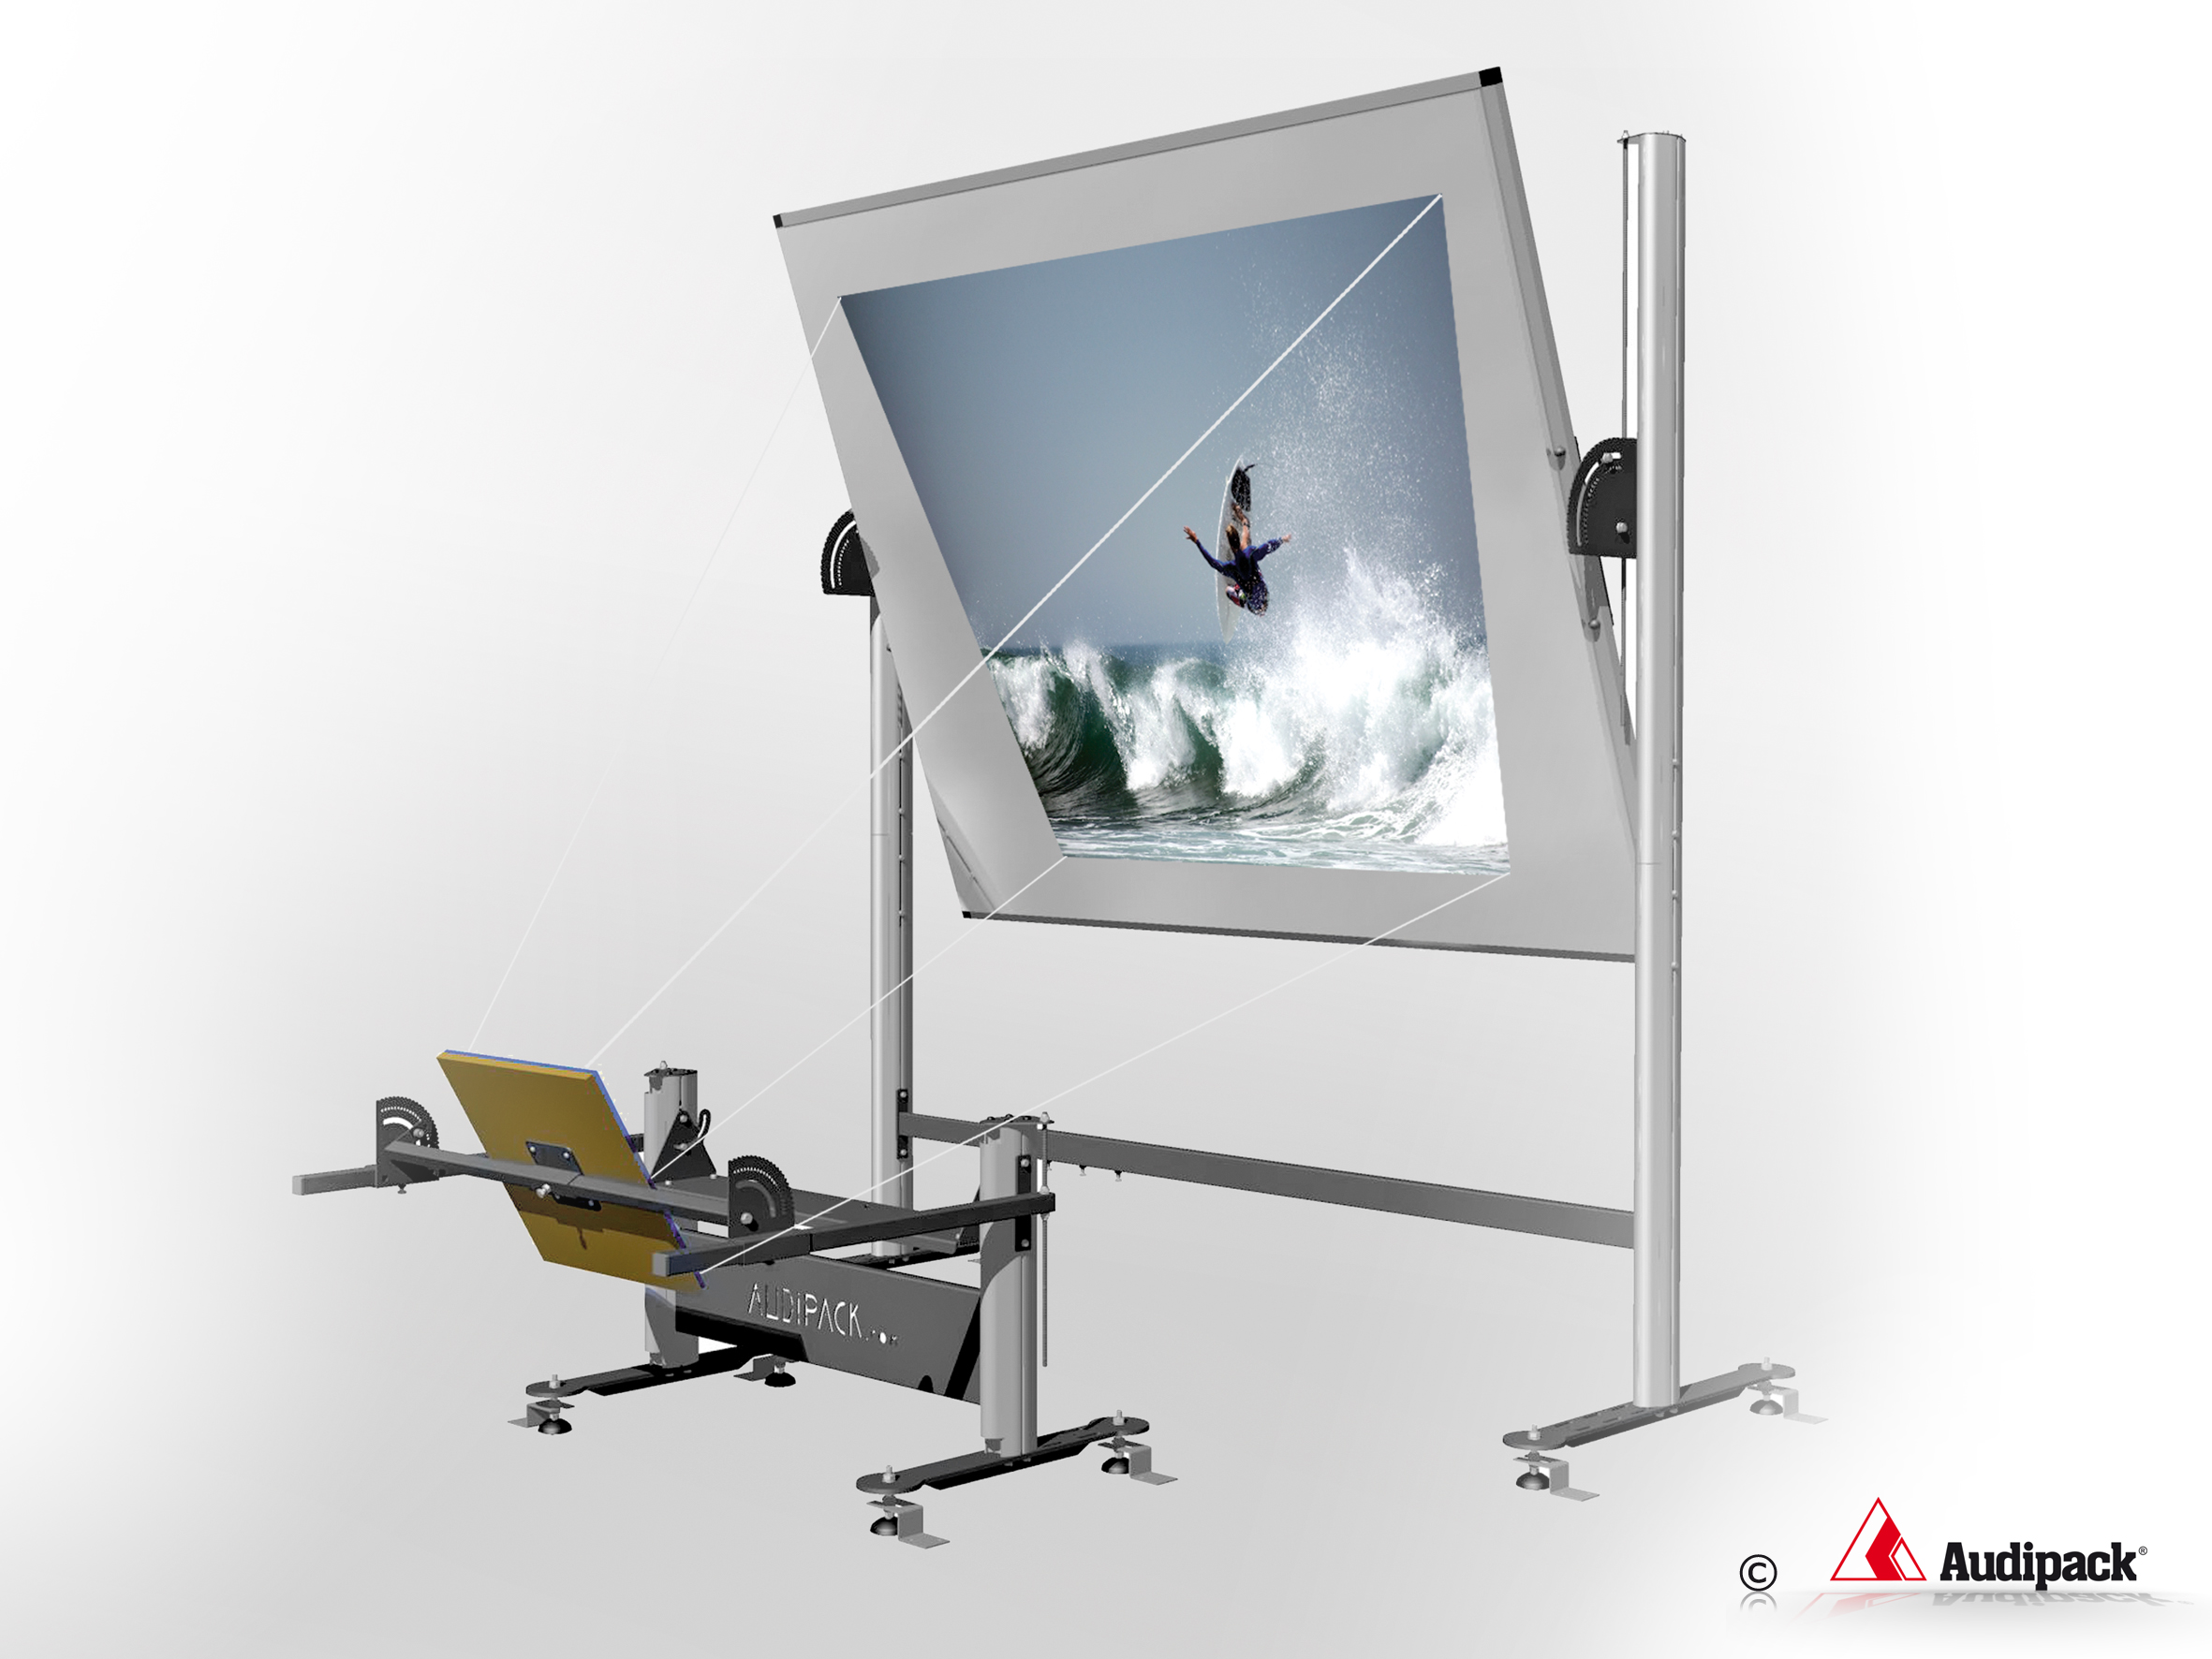 Rear Projection Set Ups Audipack It S Great To Have